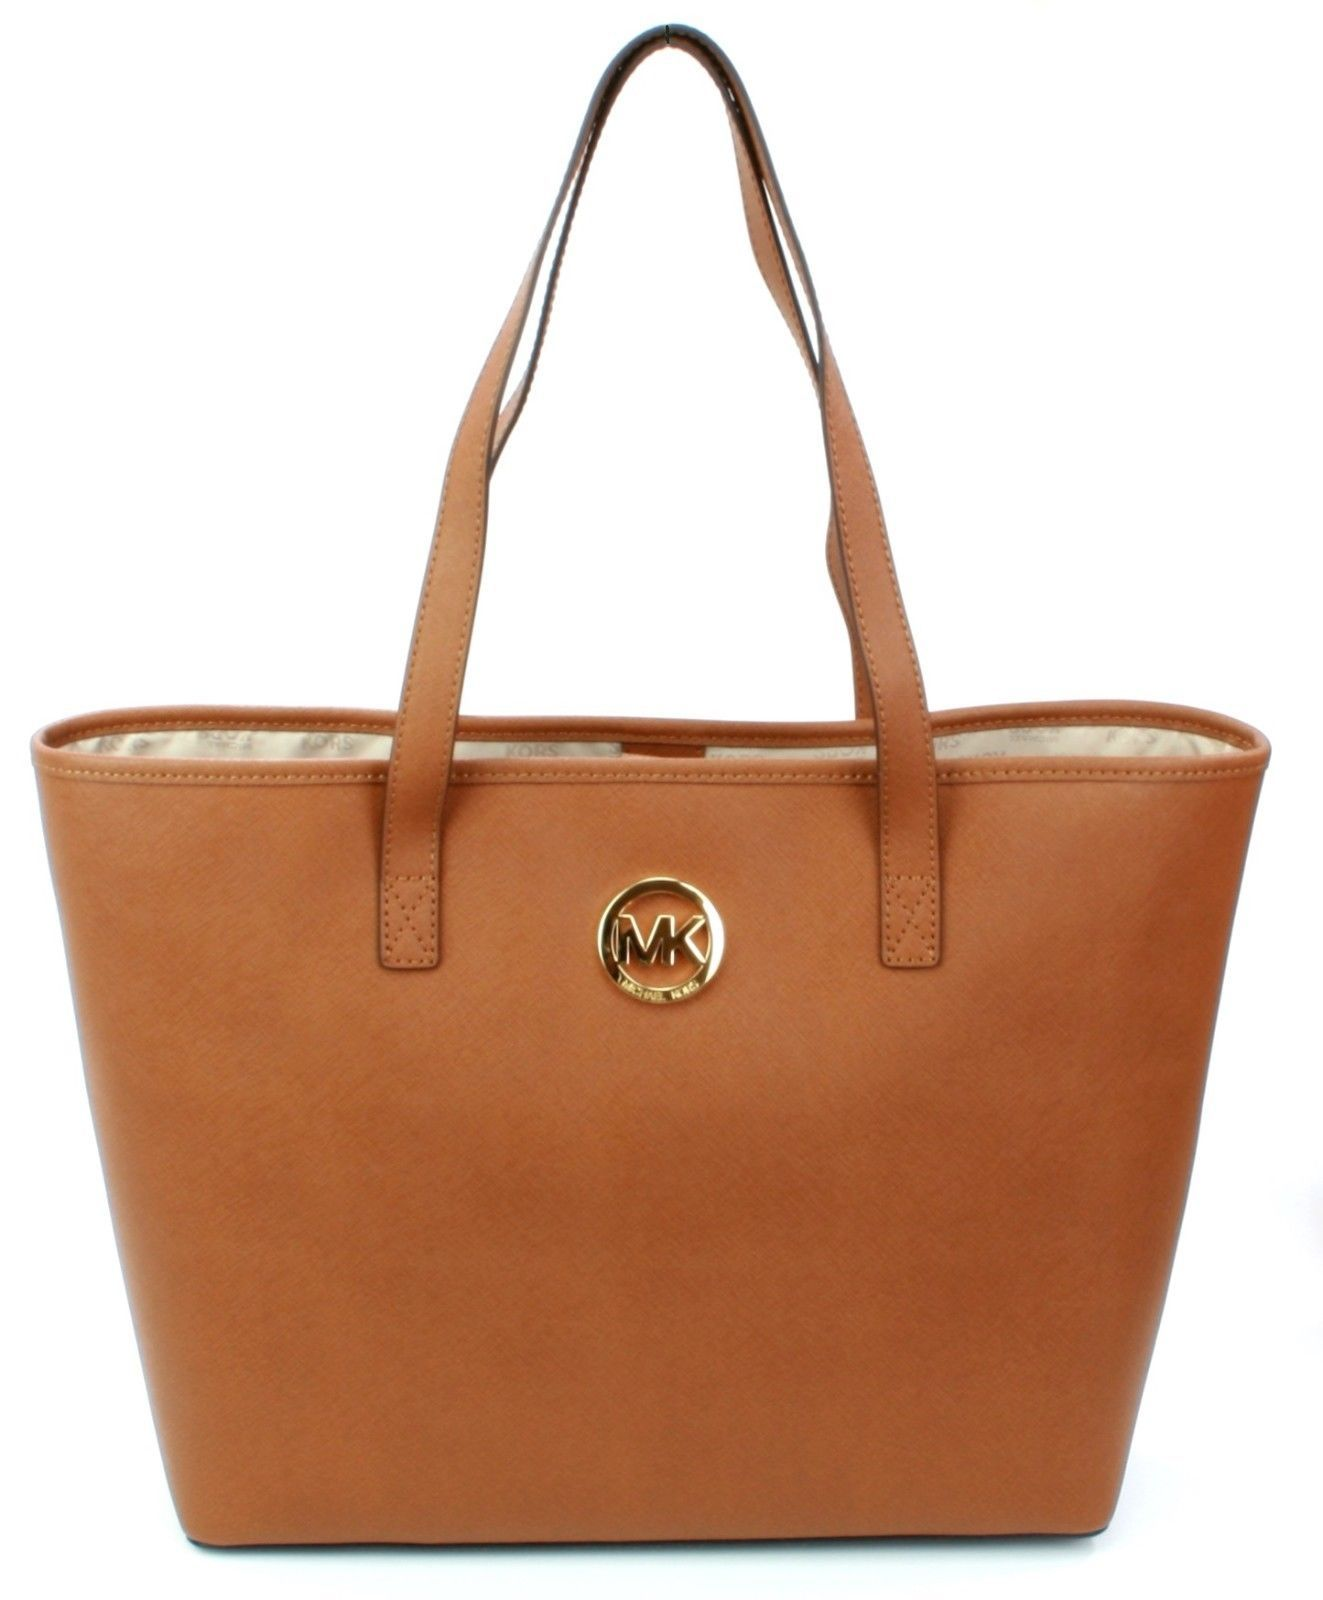 5ac0670944d58 MICHAEL KORS FIRMA saffiano in pelle marrone and 50 similar items